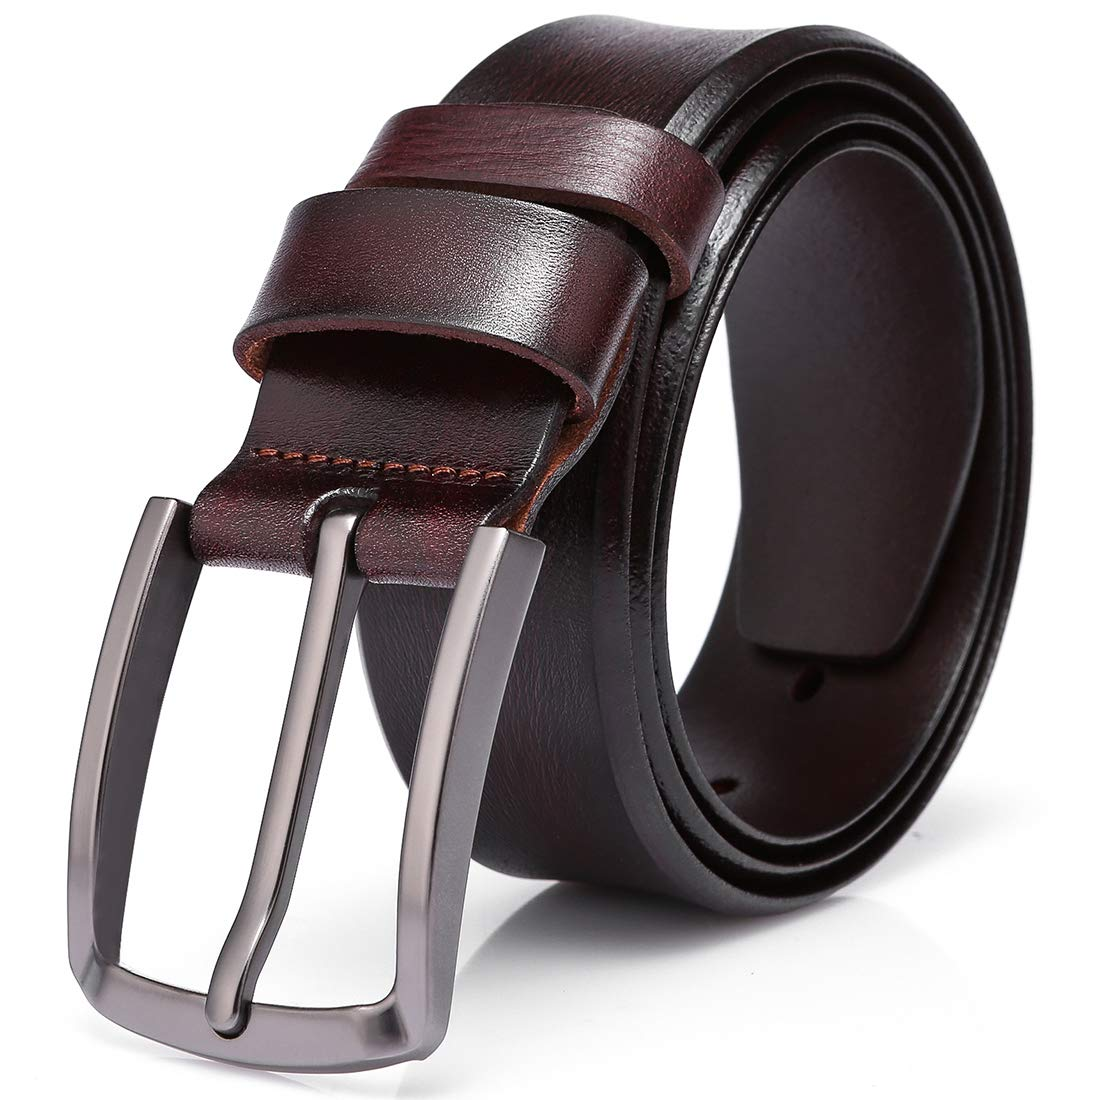 Men's 100% Italian Cow Leather Belt Men With Anti-Scratch Buckle, Packed in a Box